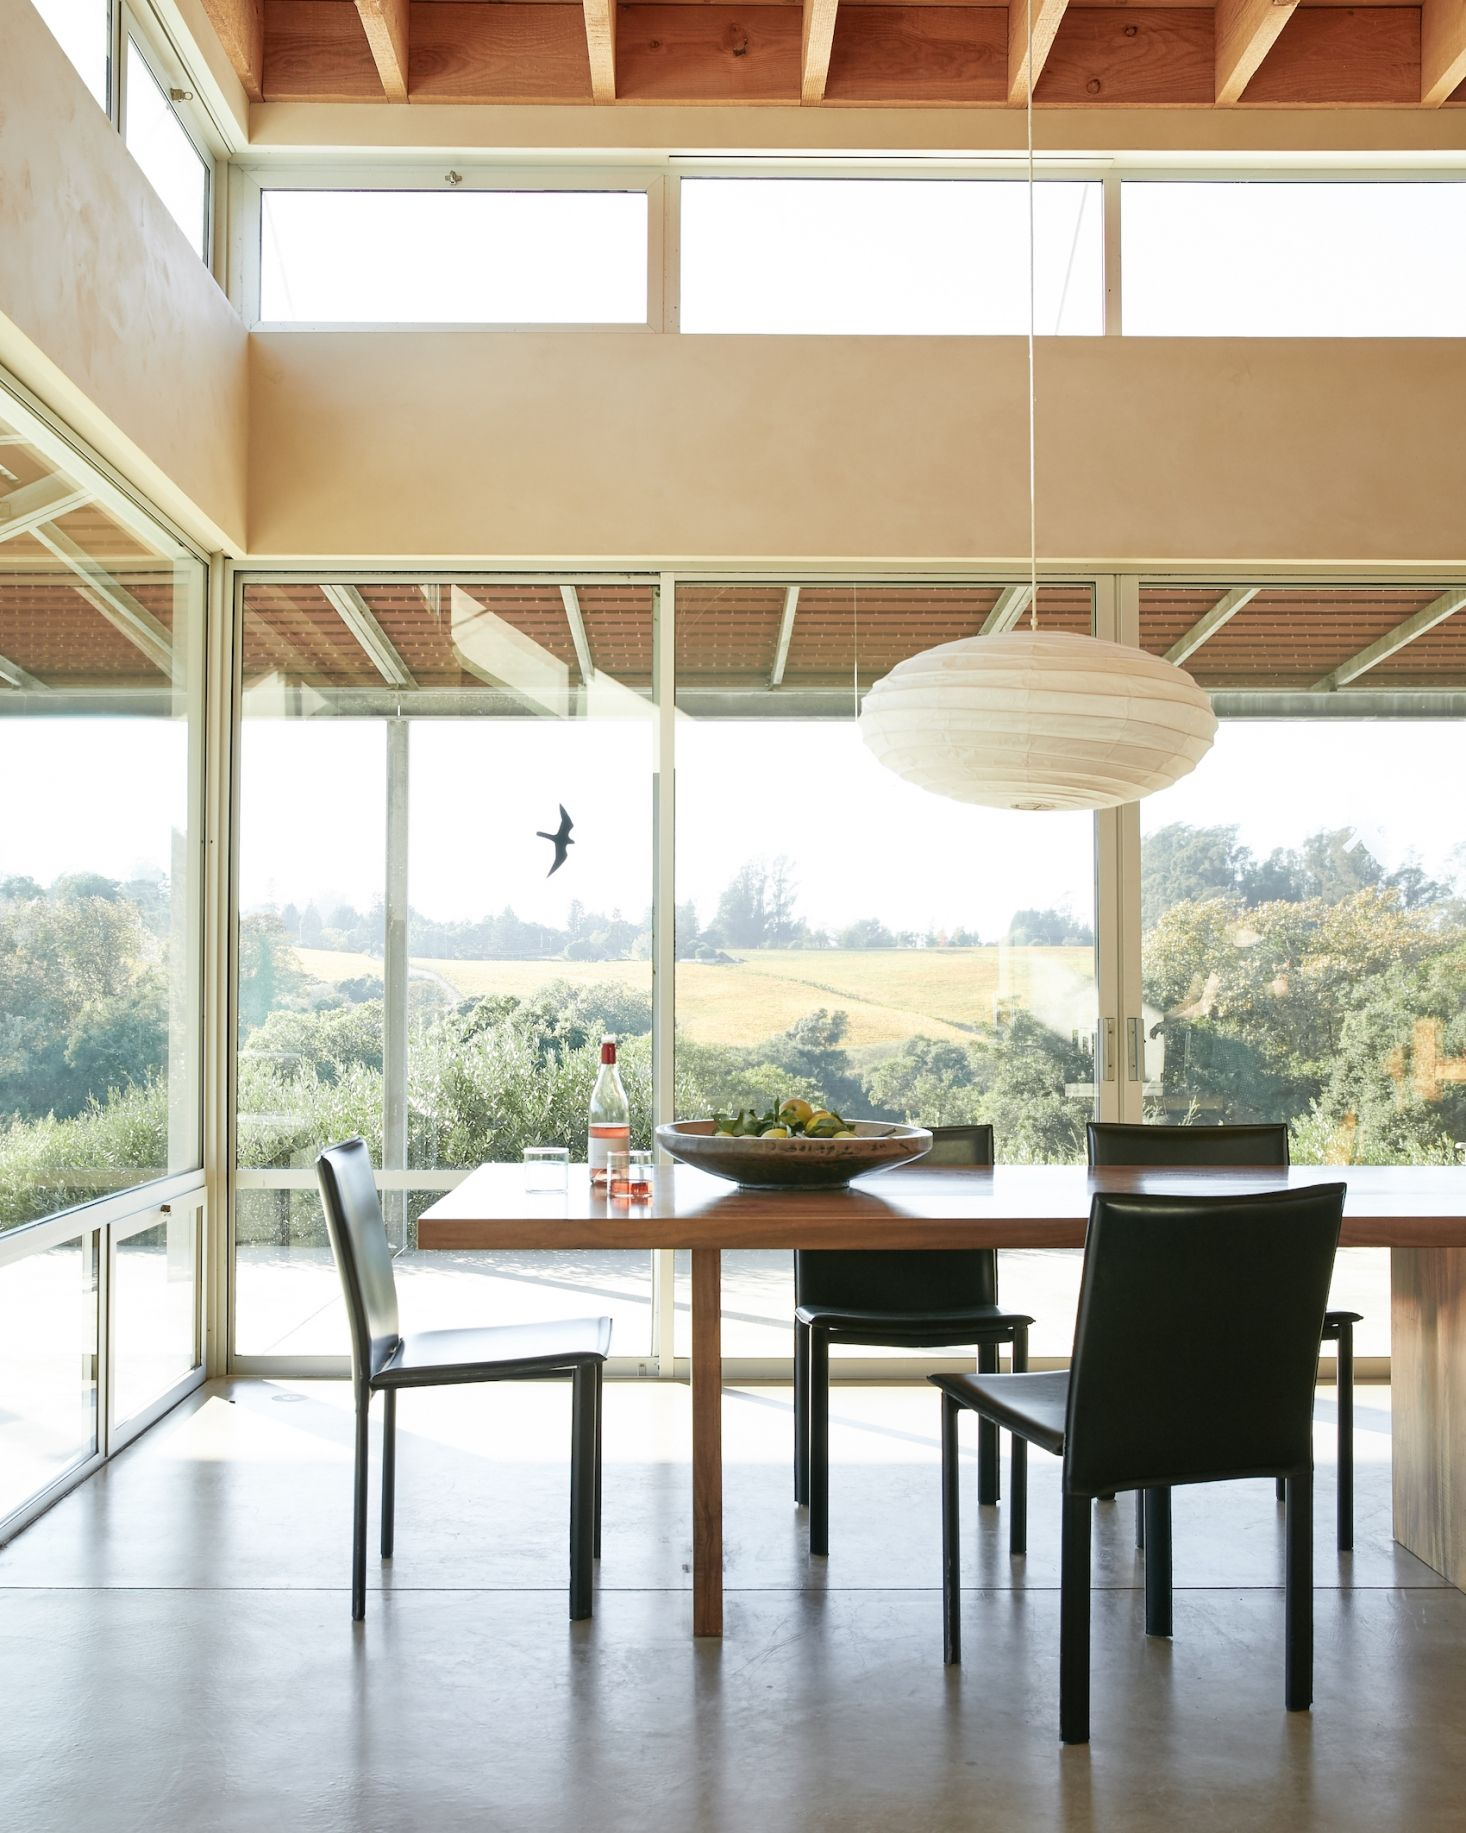 Next to the kitchen is the open plan dining room perched on the